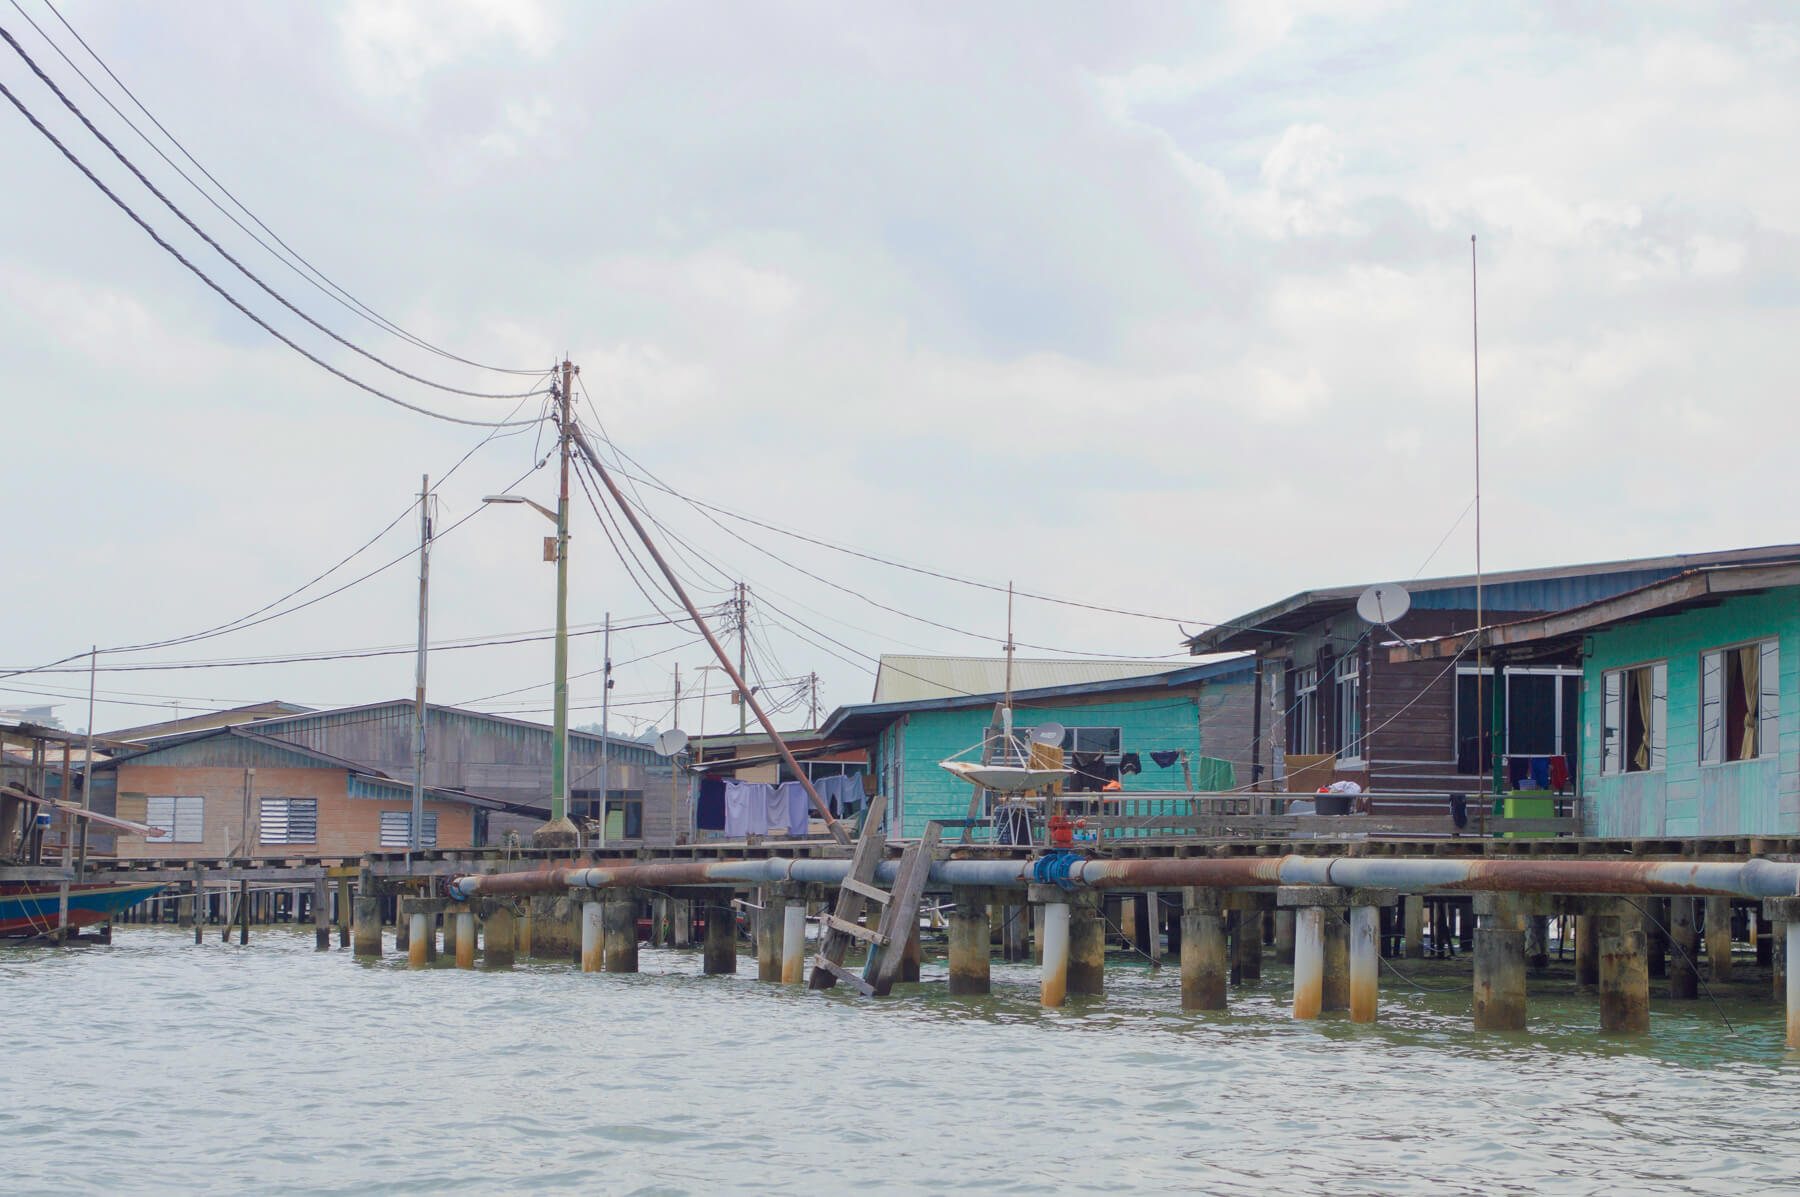 Looking at the Brunei water village from the boat, with the huge pipes and coloured buildings